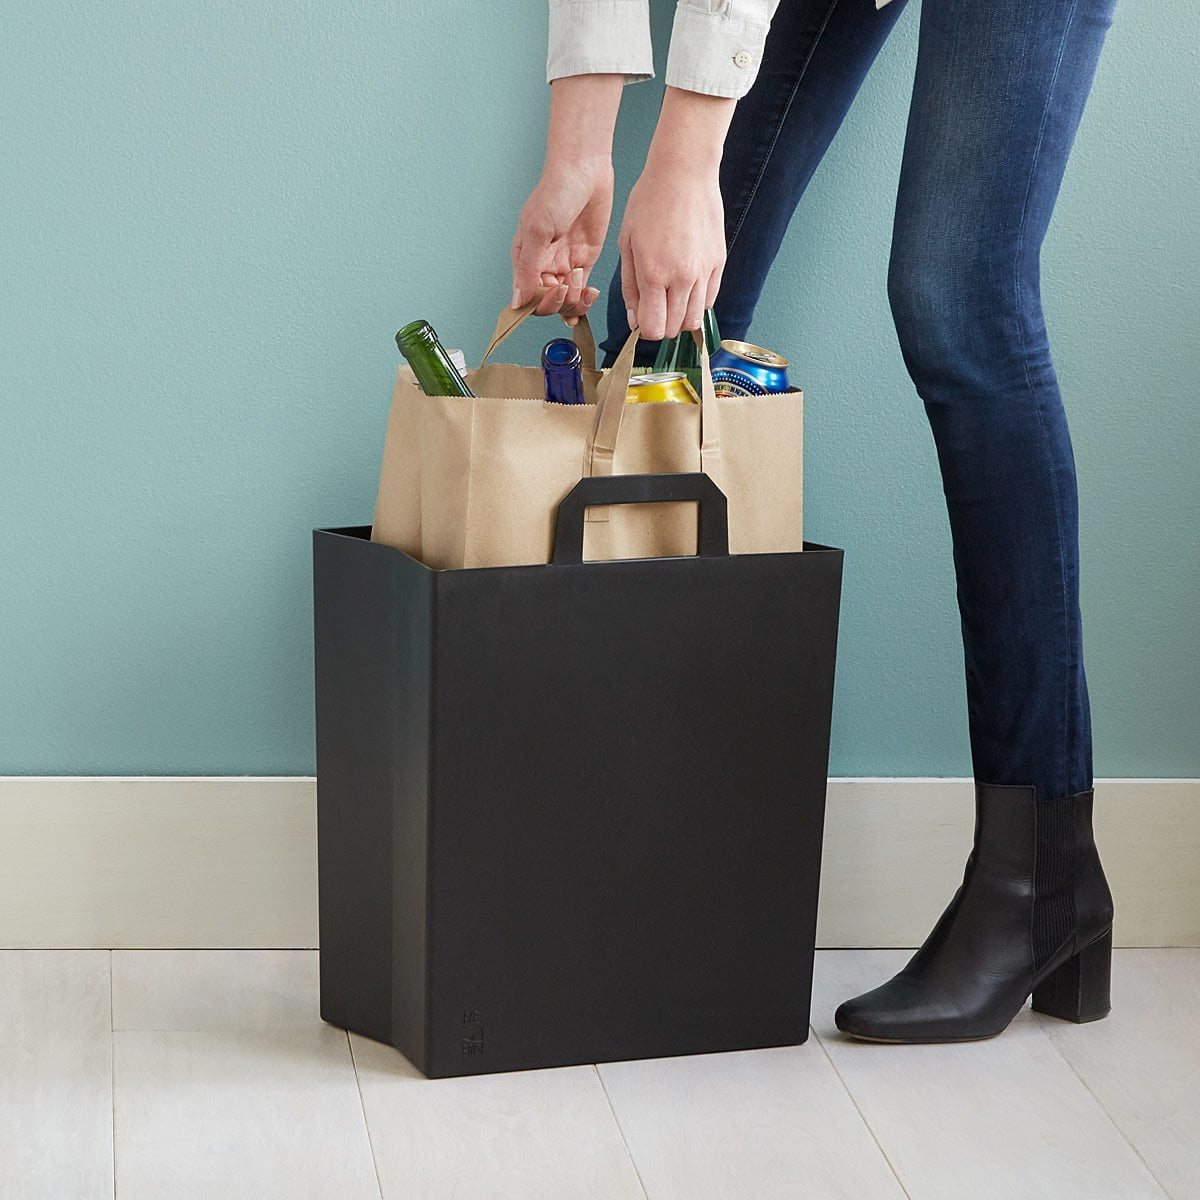 Paper Bag Recycling Bin Uncommon Goods Has So Many Cool Things But These 25 Picks Will Make Your Life Easier Popsugar Smart Living Photo 15